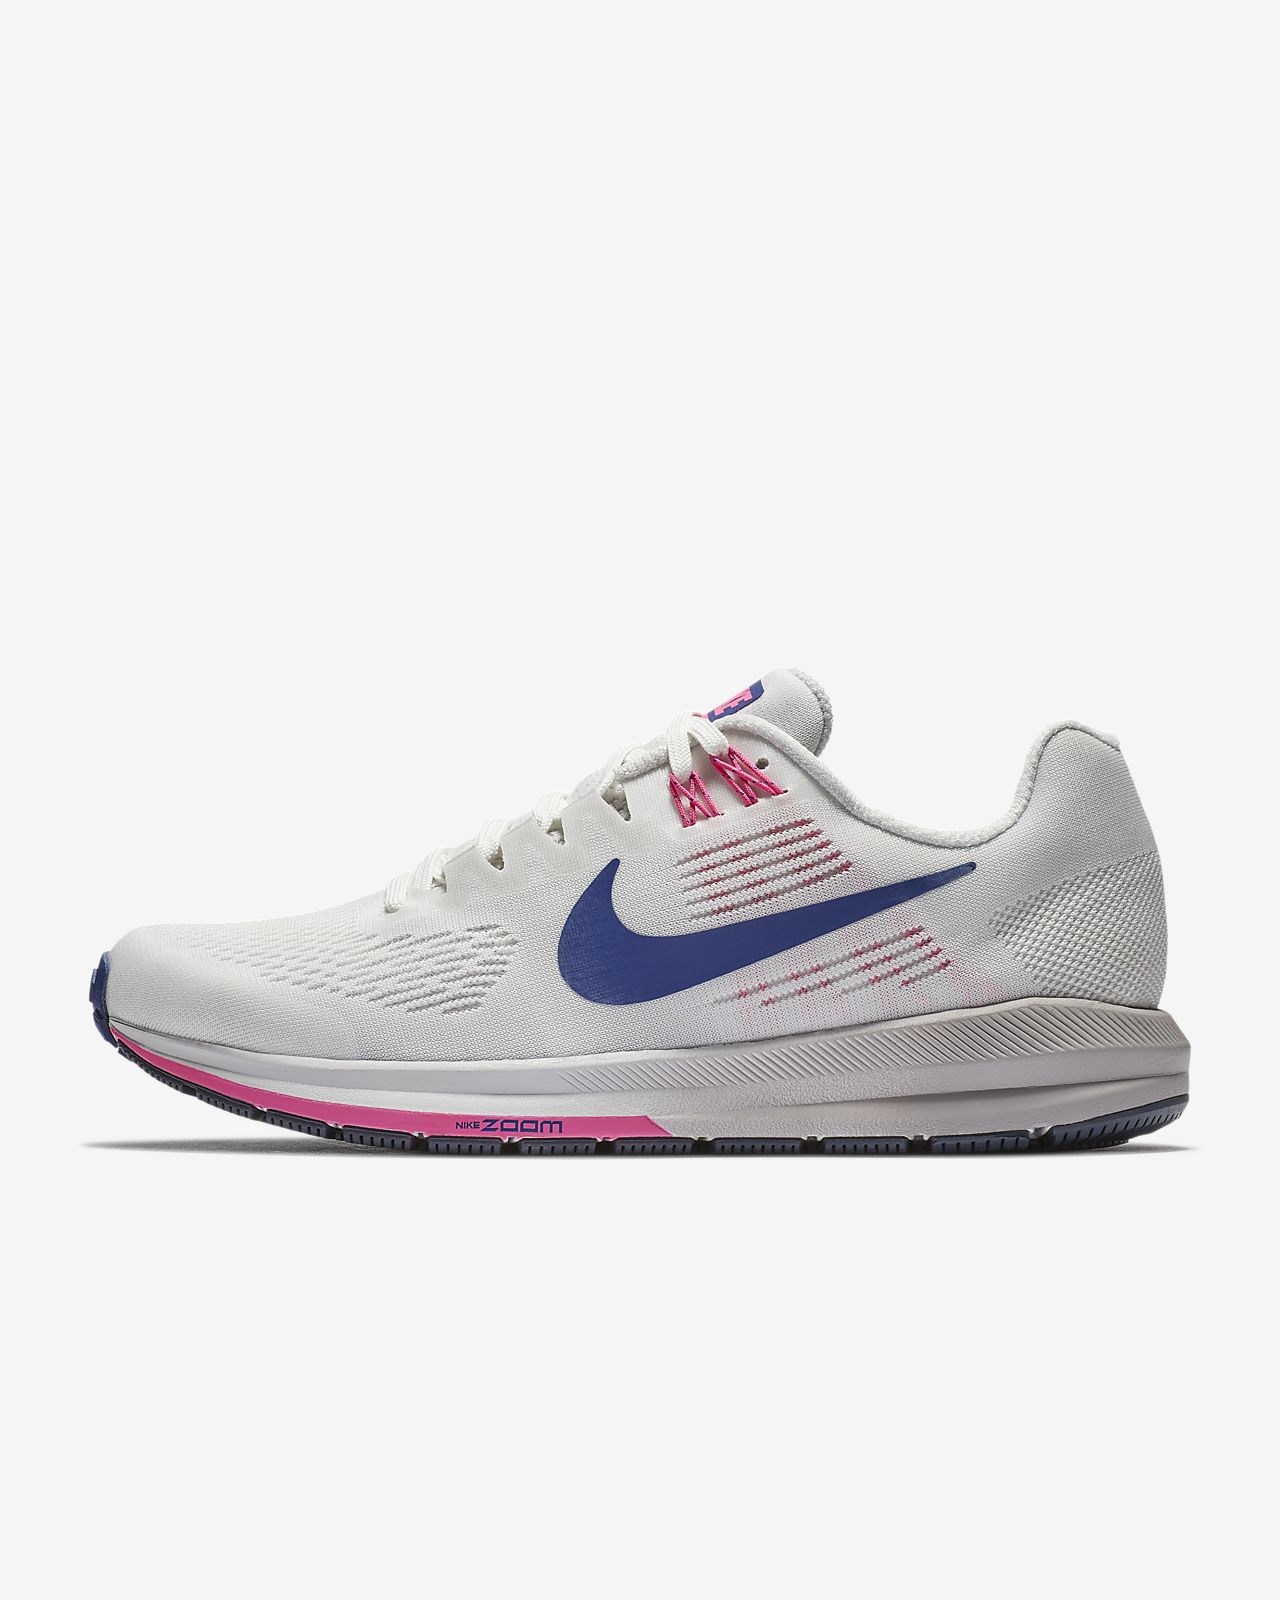 6a8ca96f6888 ... official store nike air zoom structure 21 womens running shoe 7abb1  ef647